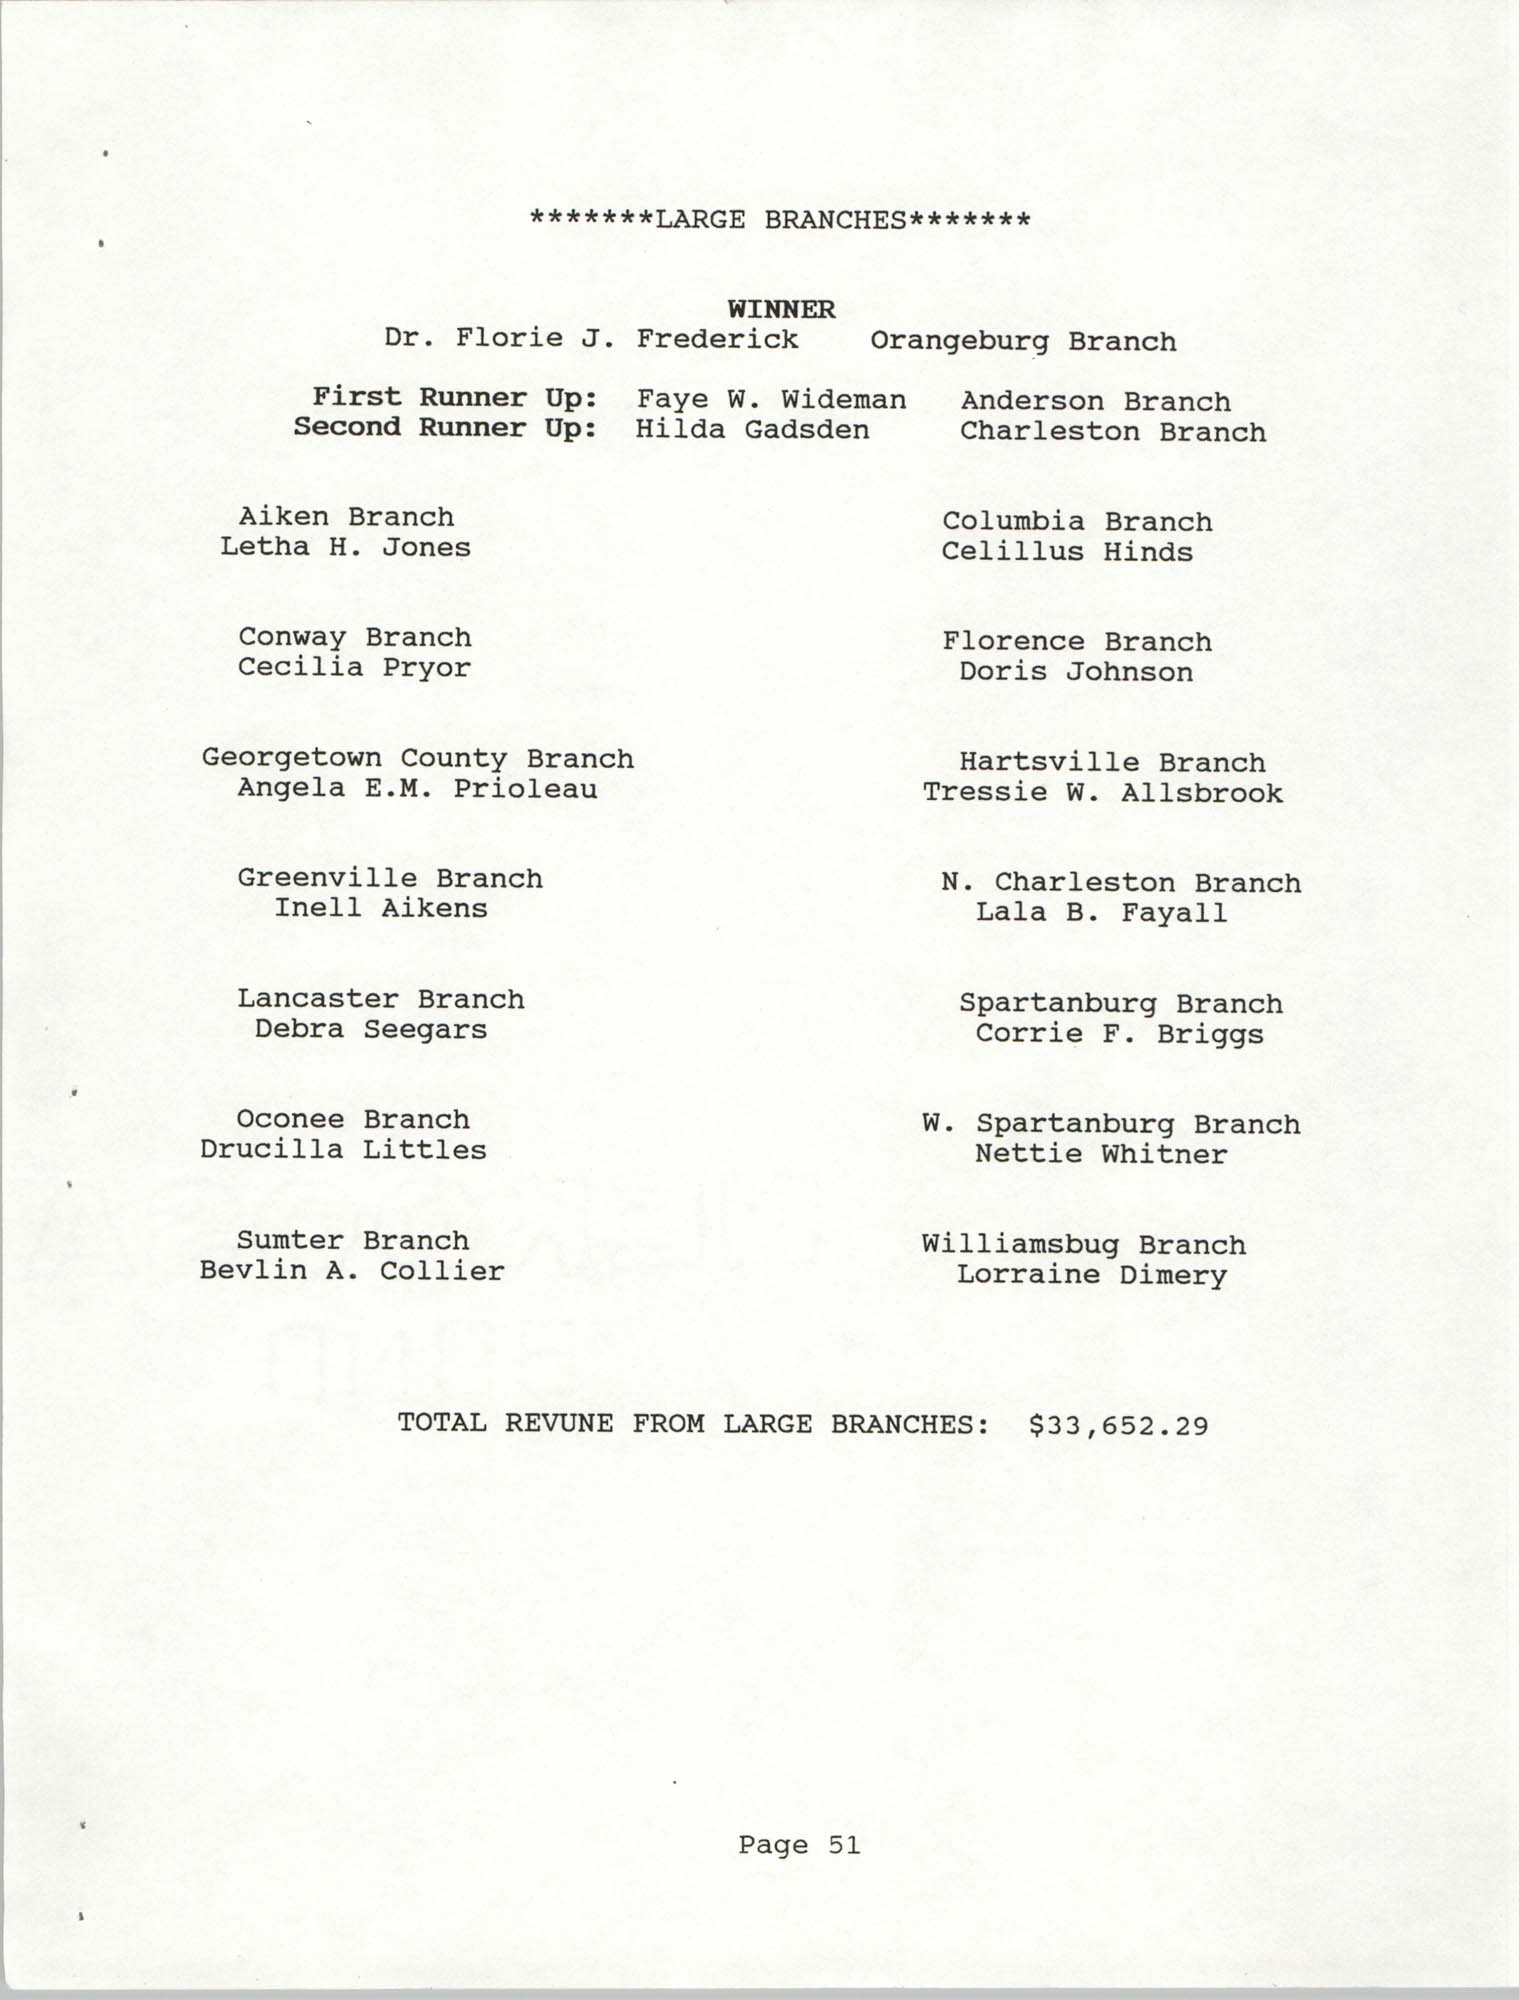 South Carolina Conference of Branches of the NAACP, 1990 Annual Report, Part Two, Page 51